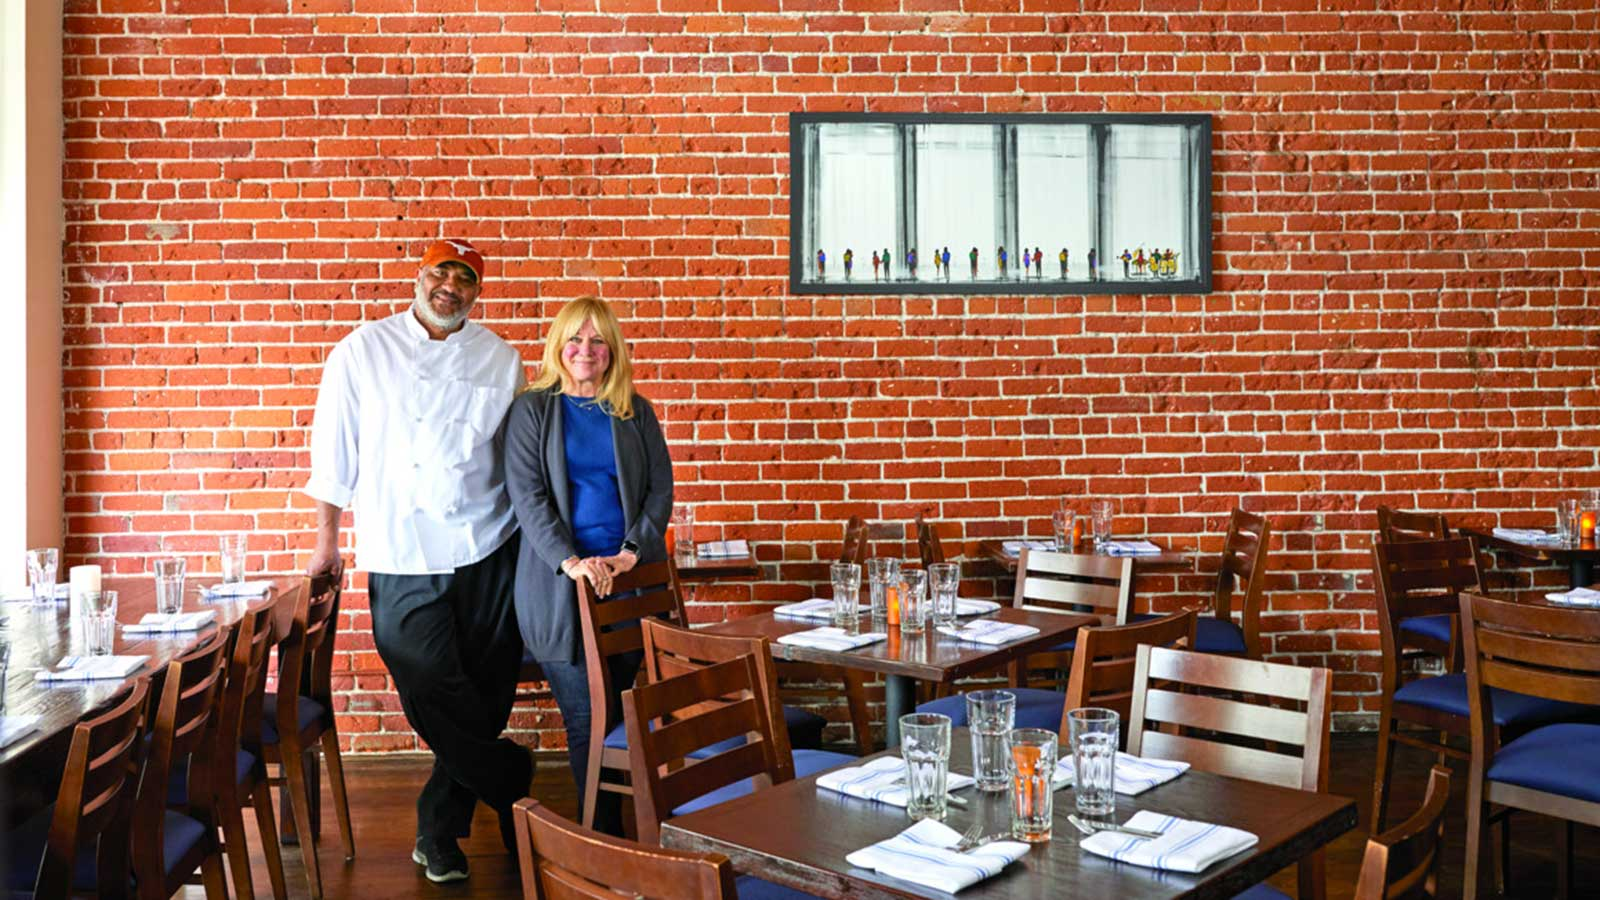 The two owners standing in front of a brick wall in their restaurant